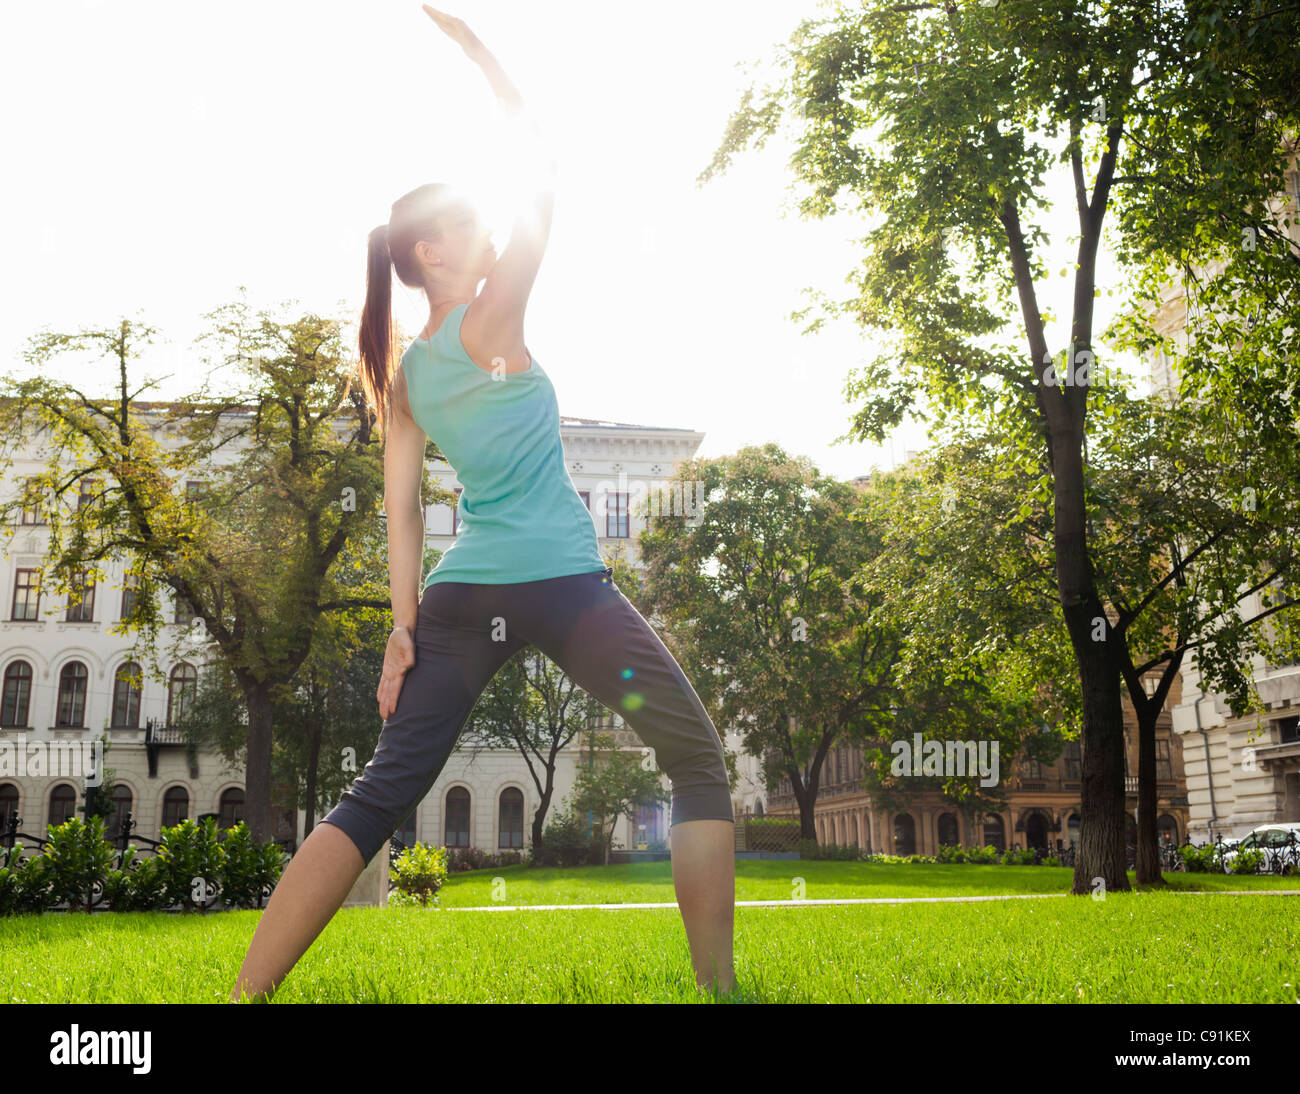 Woman stretching in urban park Stock Photo